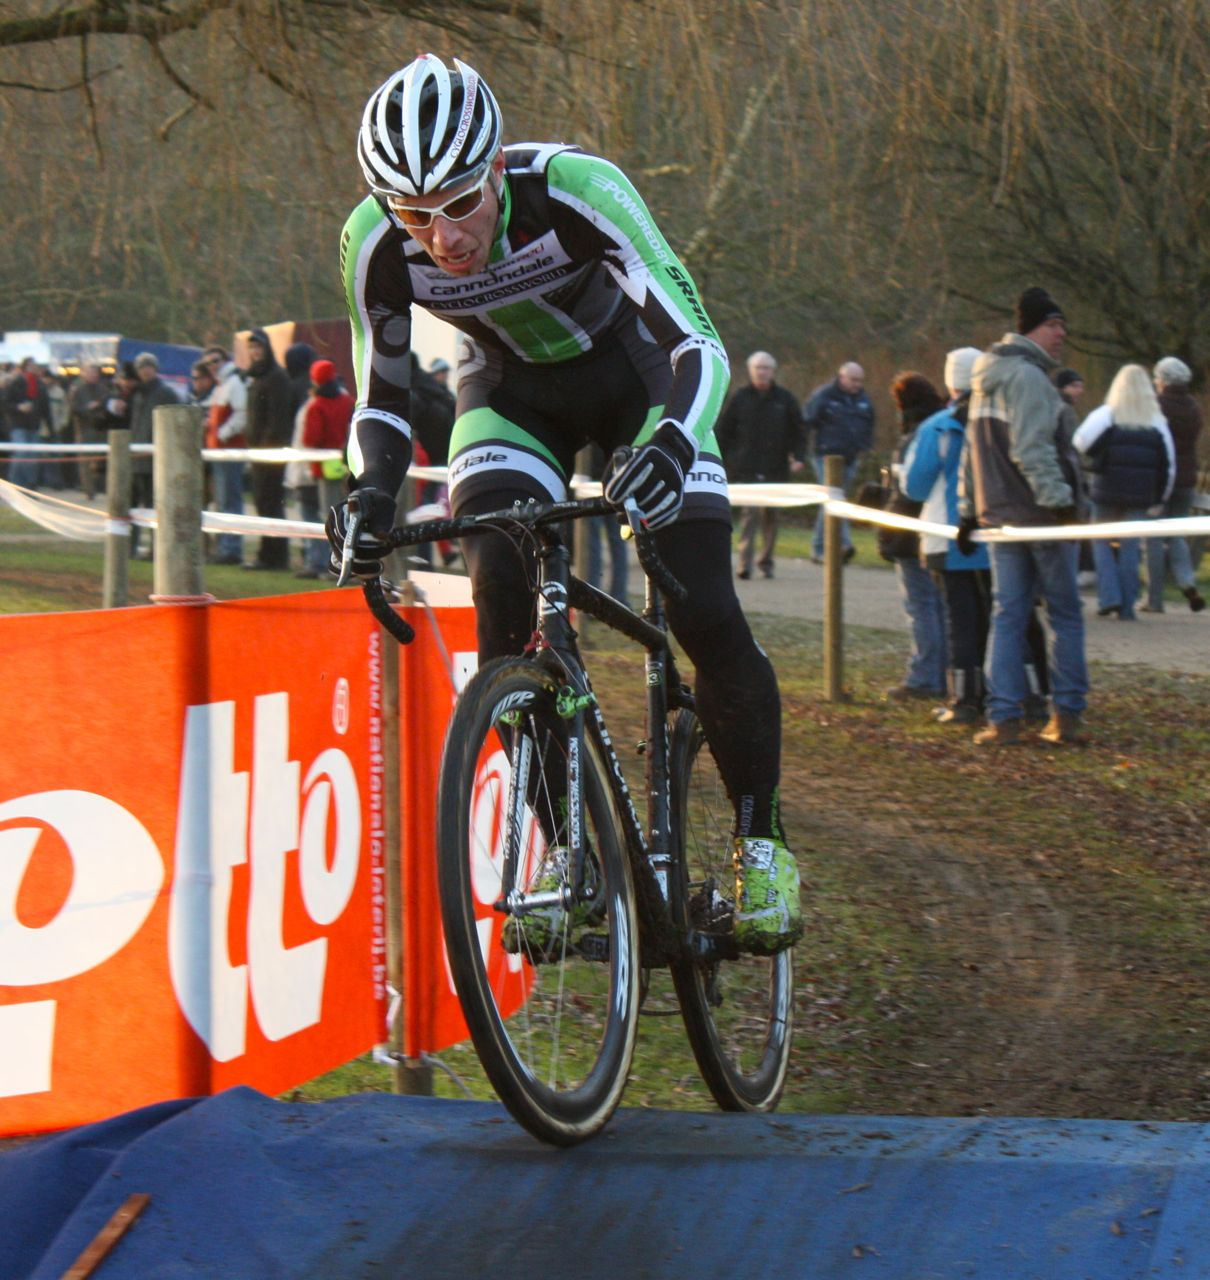 Jeremy Powers heads for the sand - Sint Niklaas, Belgium, January 2, 2010.  ? Dan Seaton